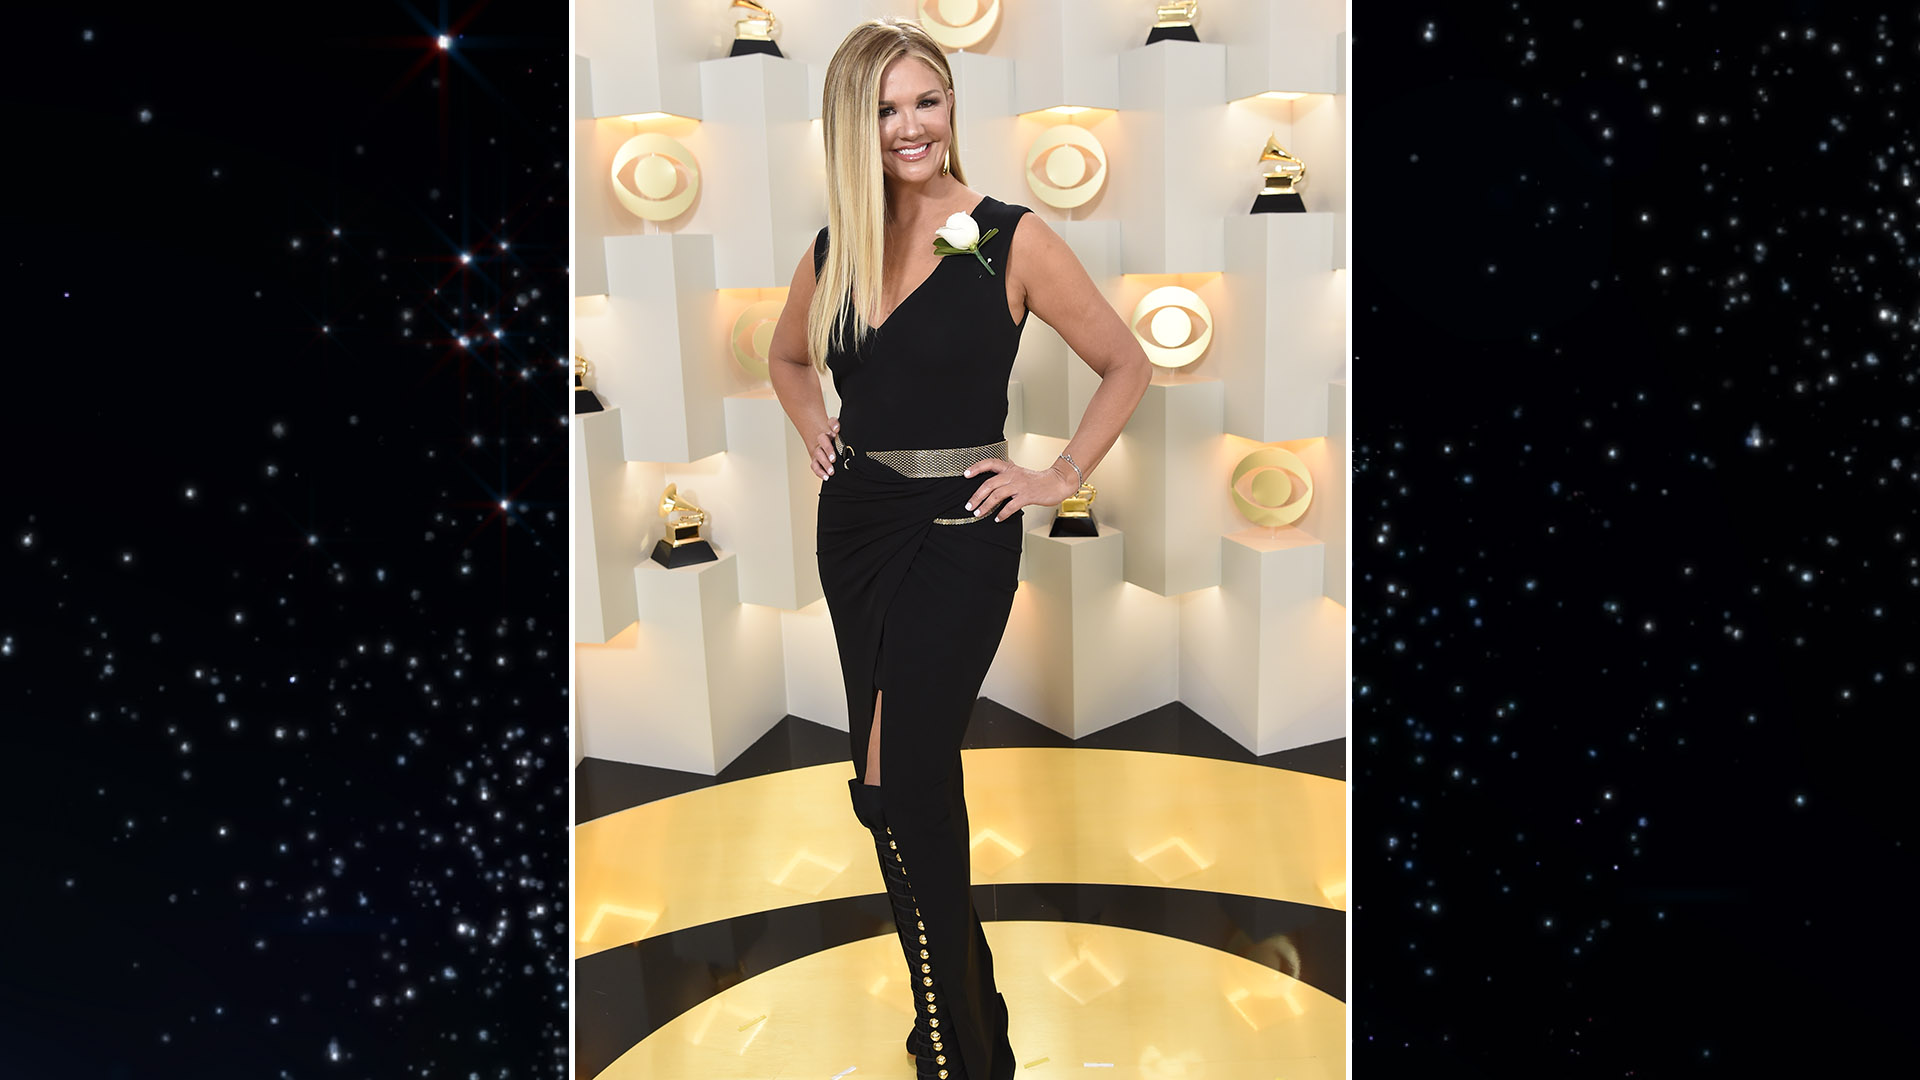 Entertainment Tonight host Nancy O'Dell wears a black slit dress with gold embellishments that match the night's coveted trophy.